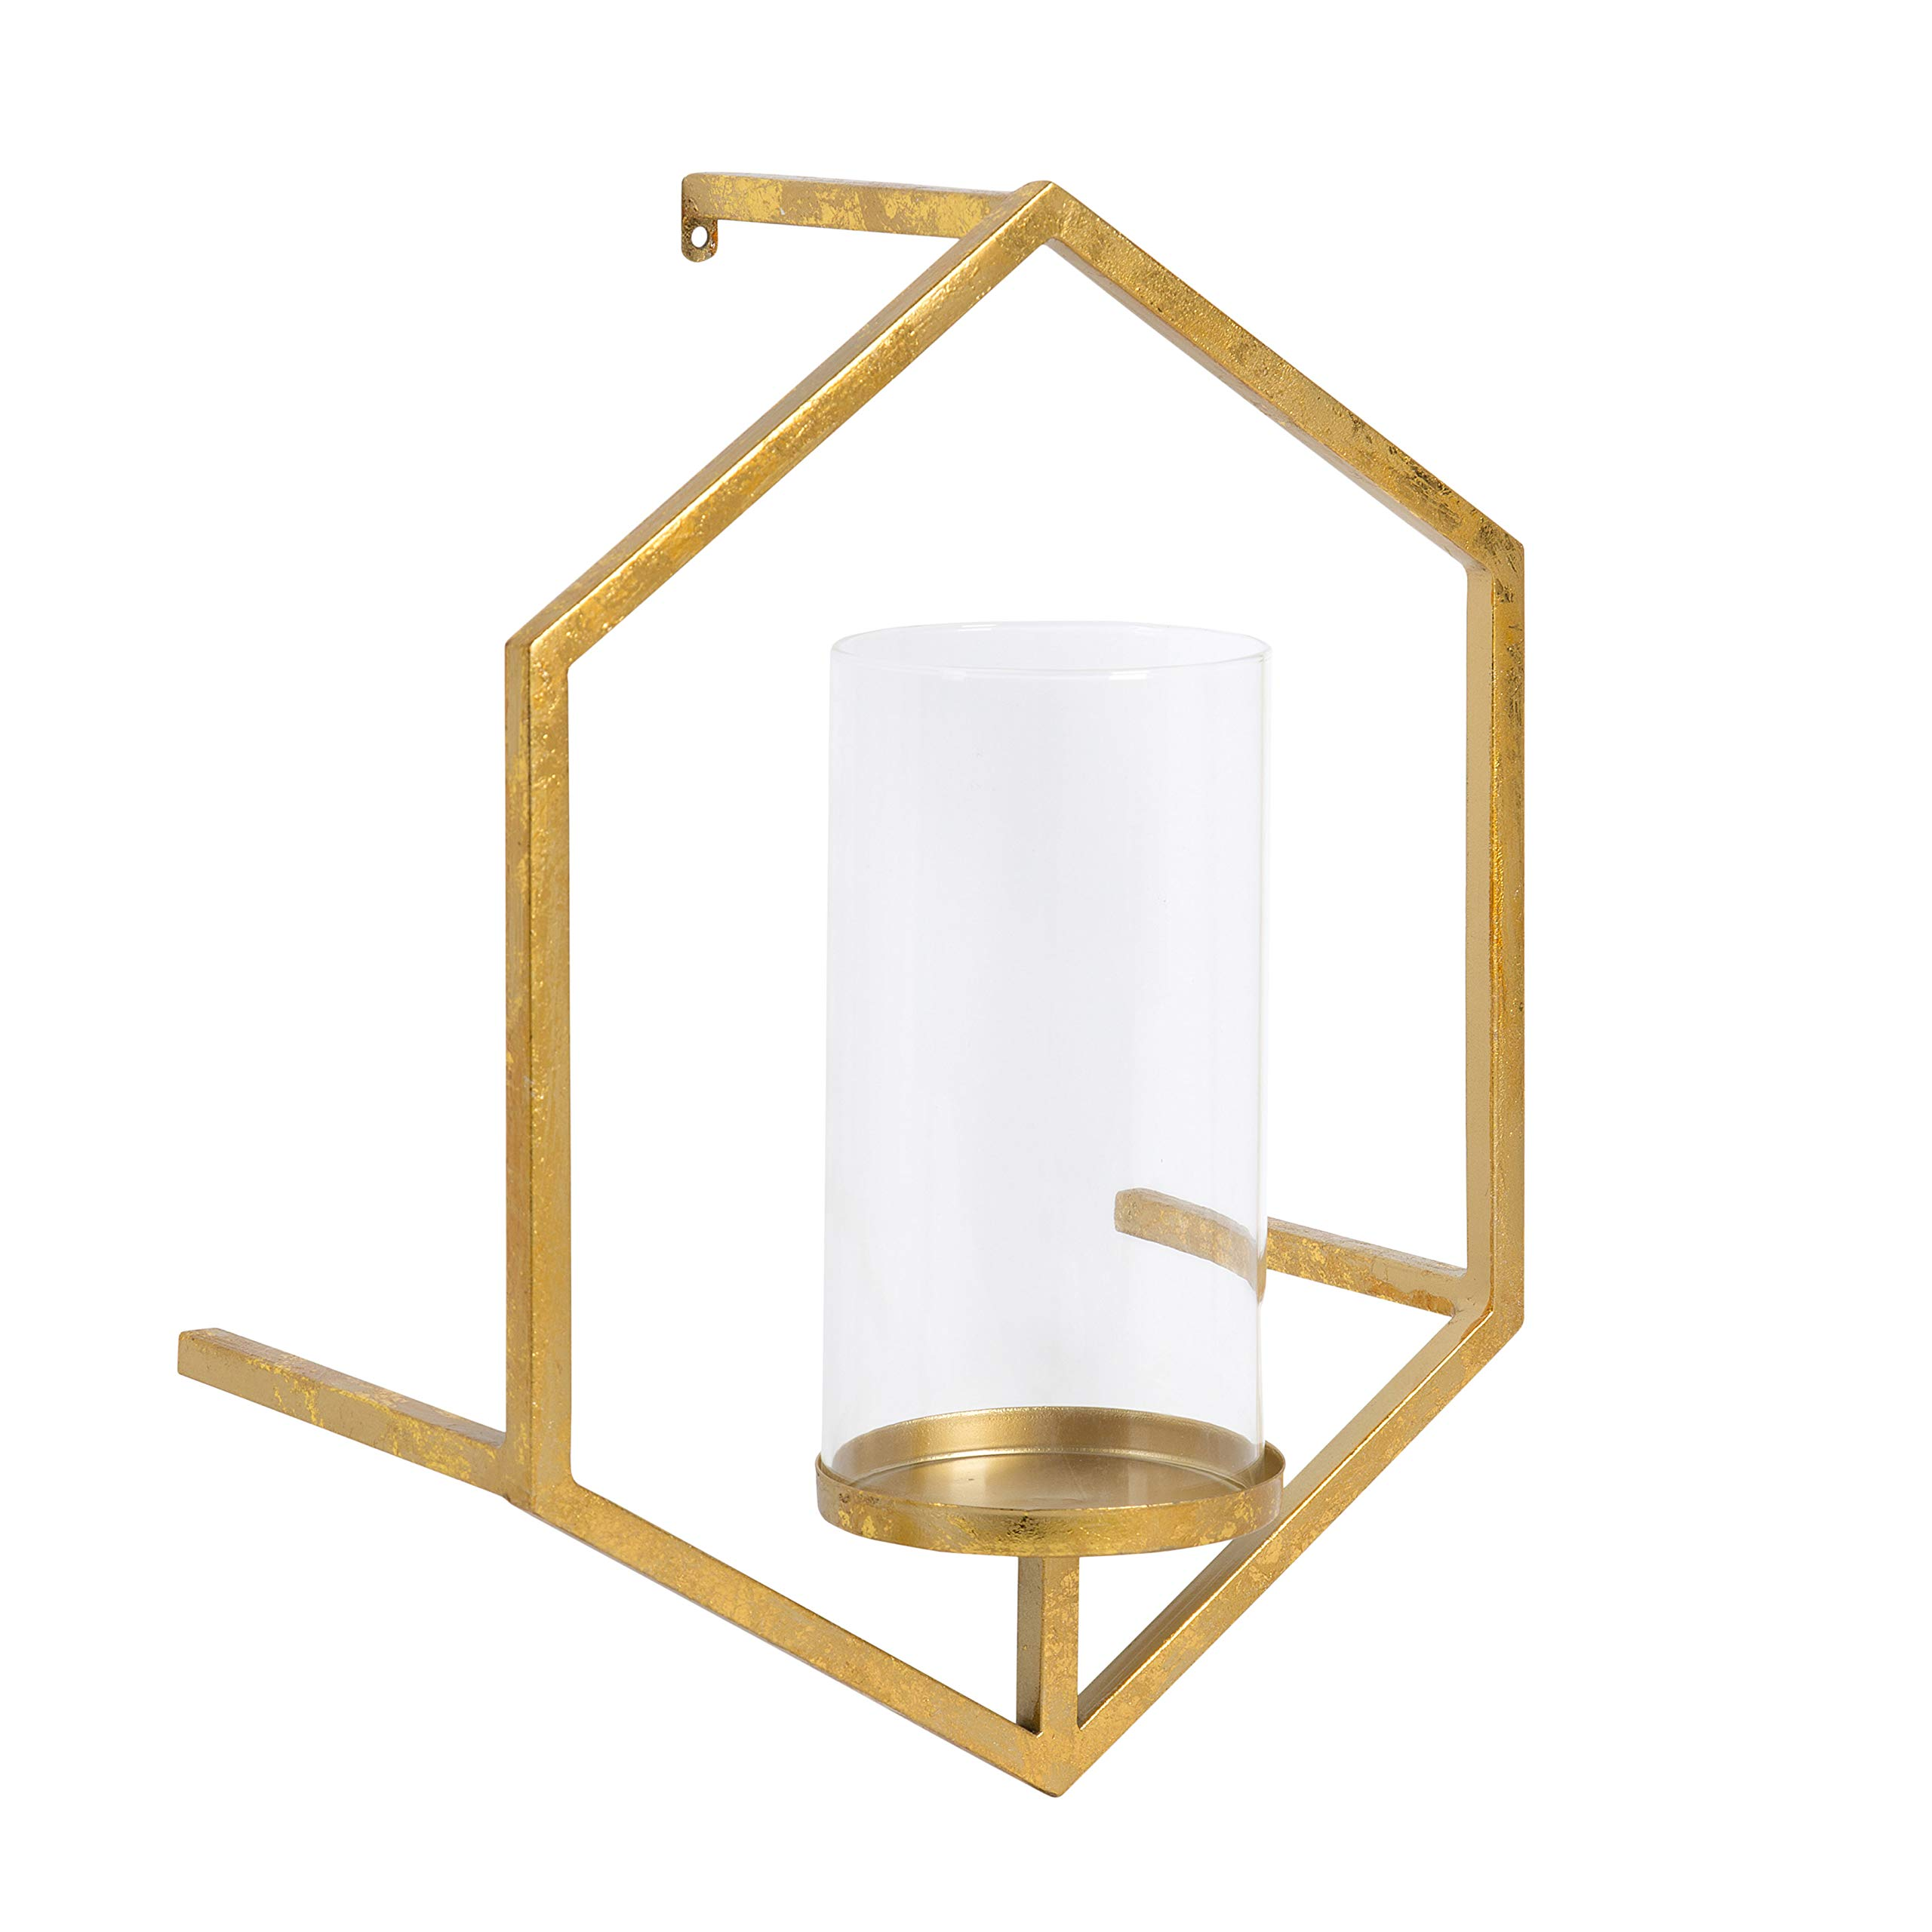 Kate and Laurel Curran Hexagon Metal Sconce Wall Candle Holder, with Glass Pillar, Gold